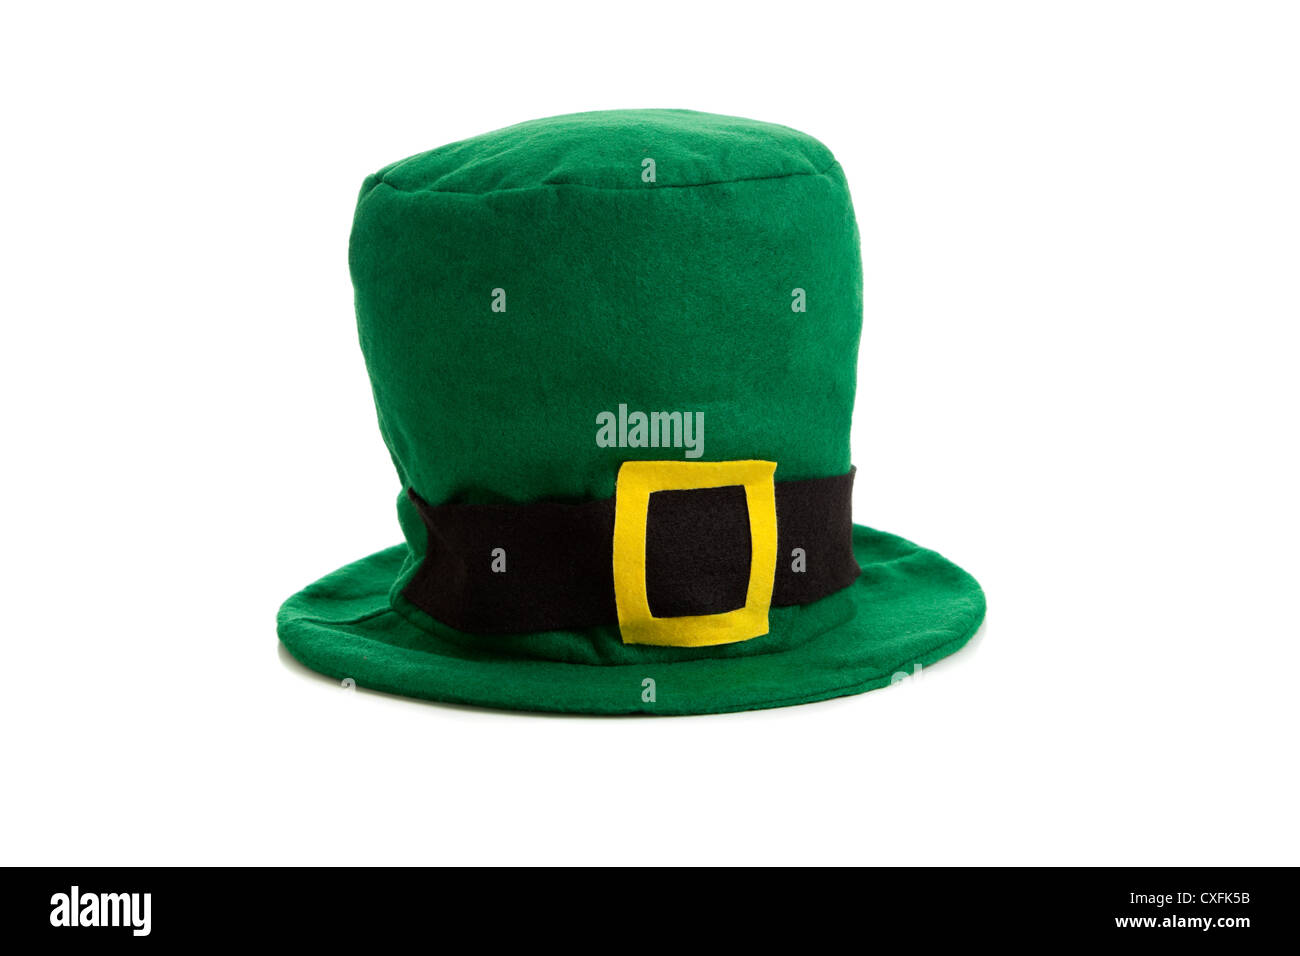 St. Patrick's day green leprechaun hat on a white background - Stock Image